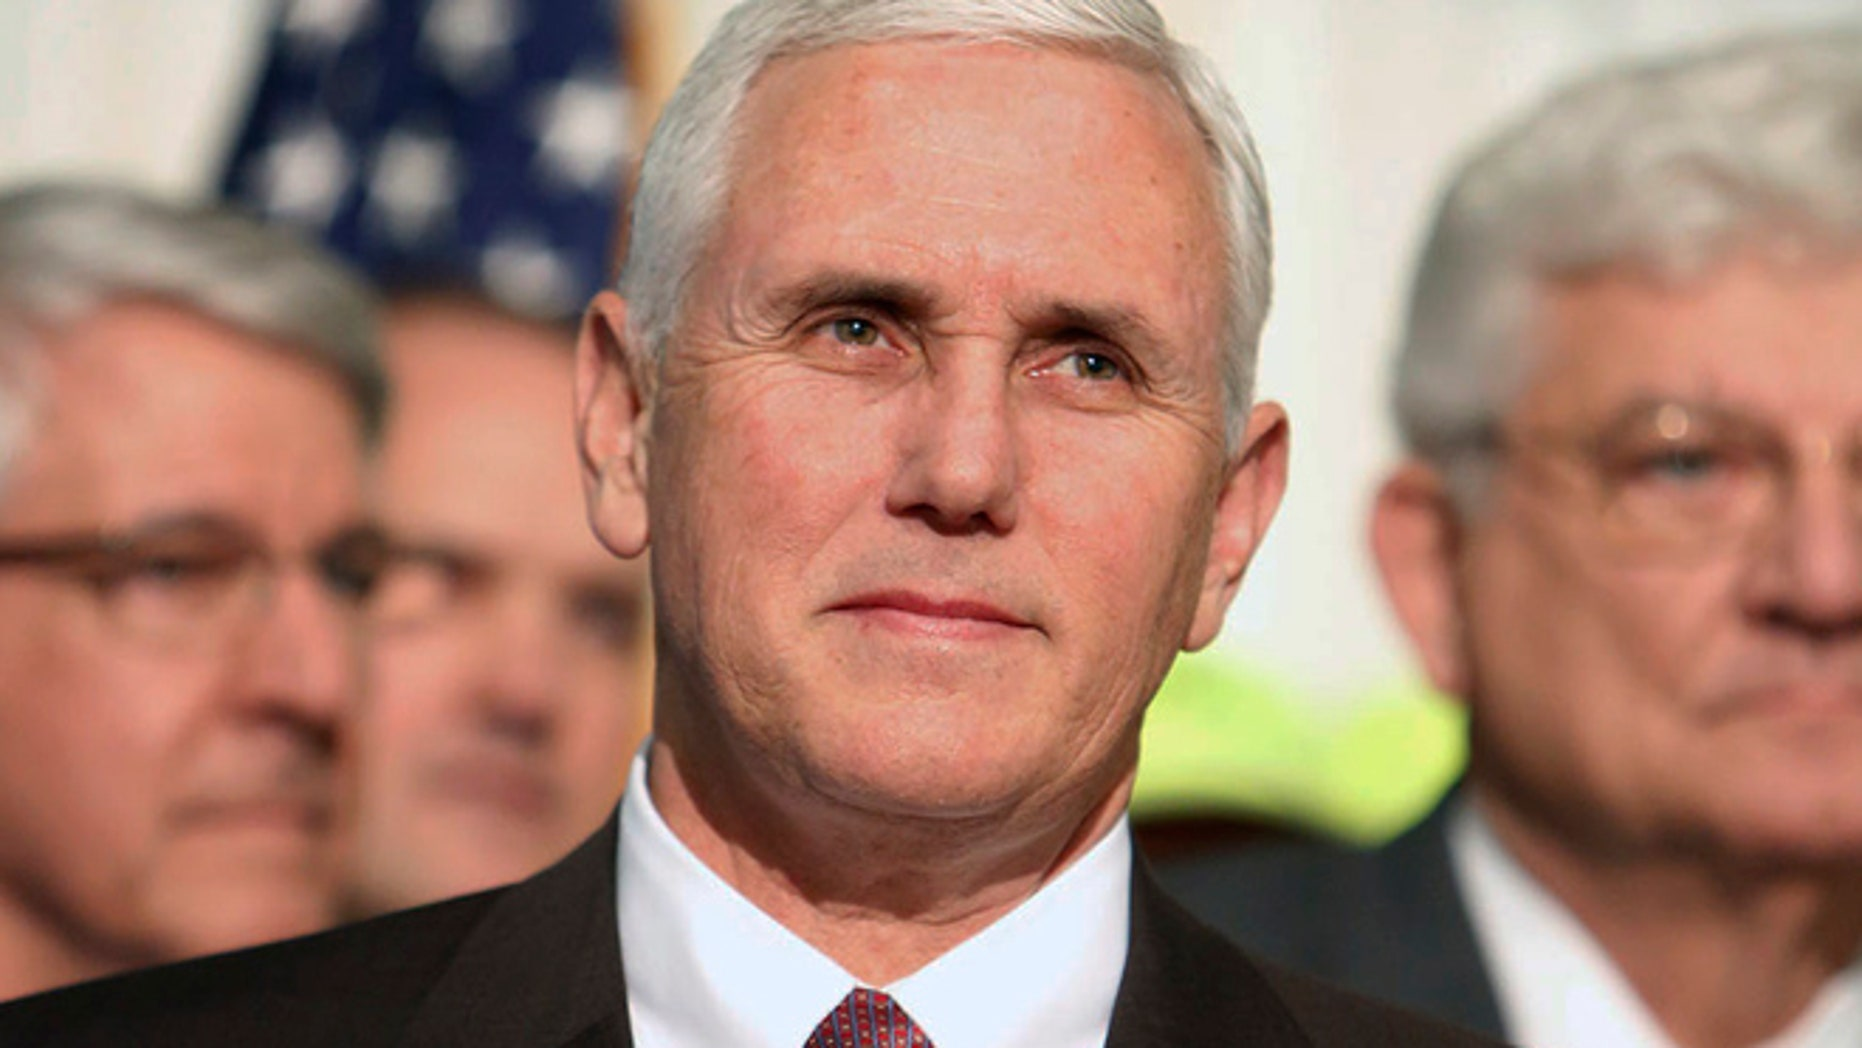 Mar 23, 2016: Indiana Gov. Mike Pence speaks to the media on Wednesday in Fort Wayne.